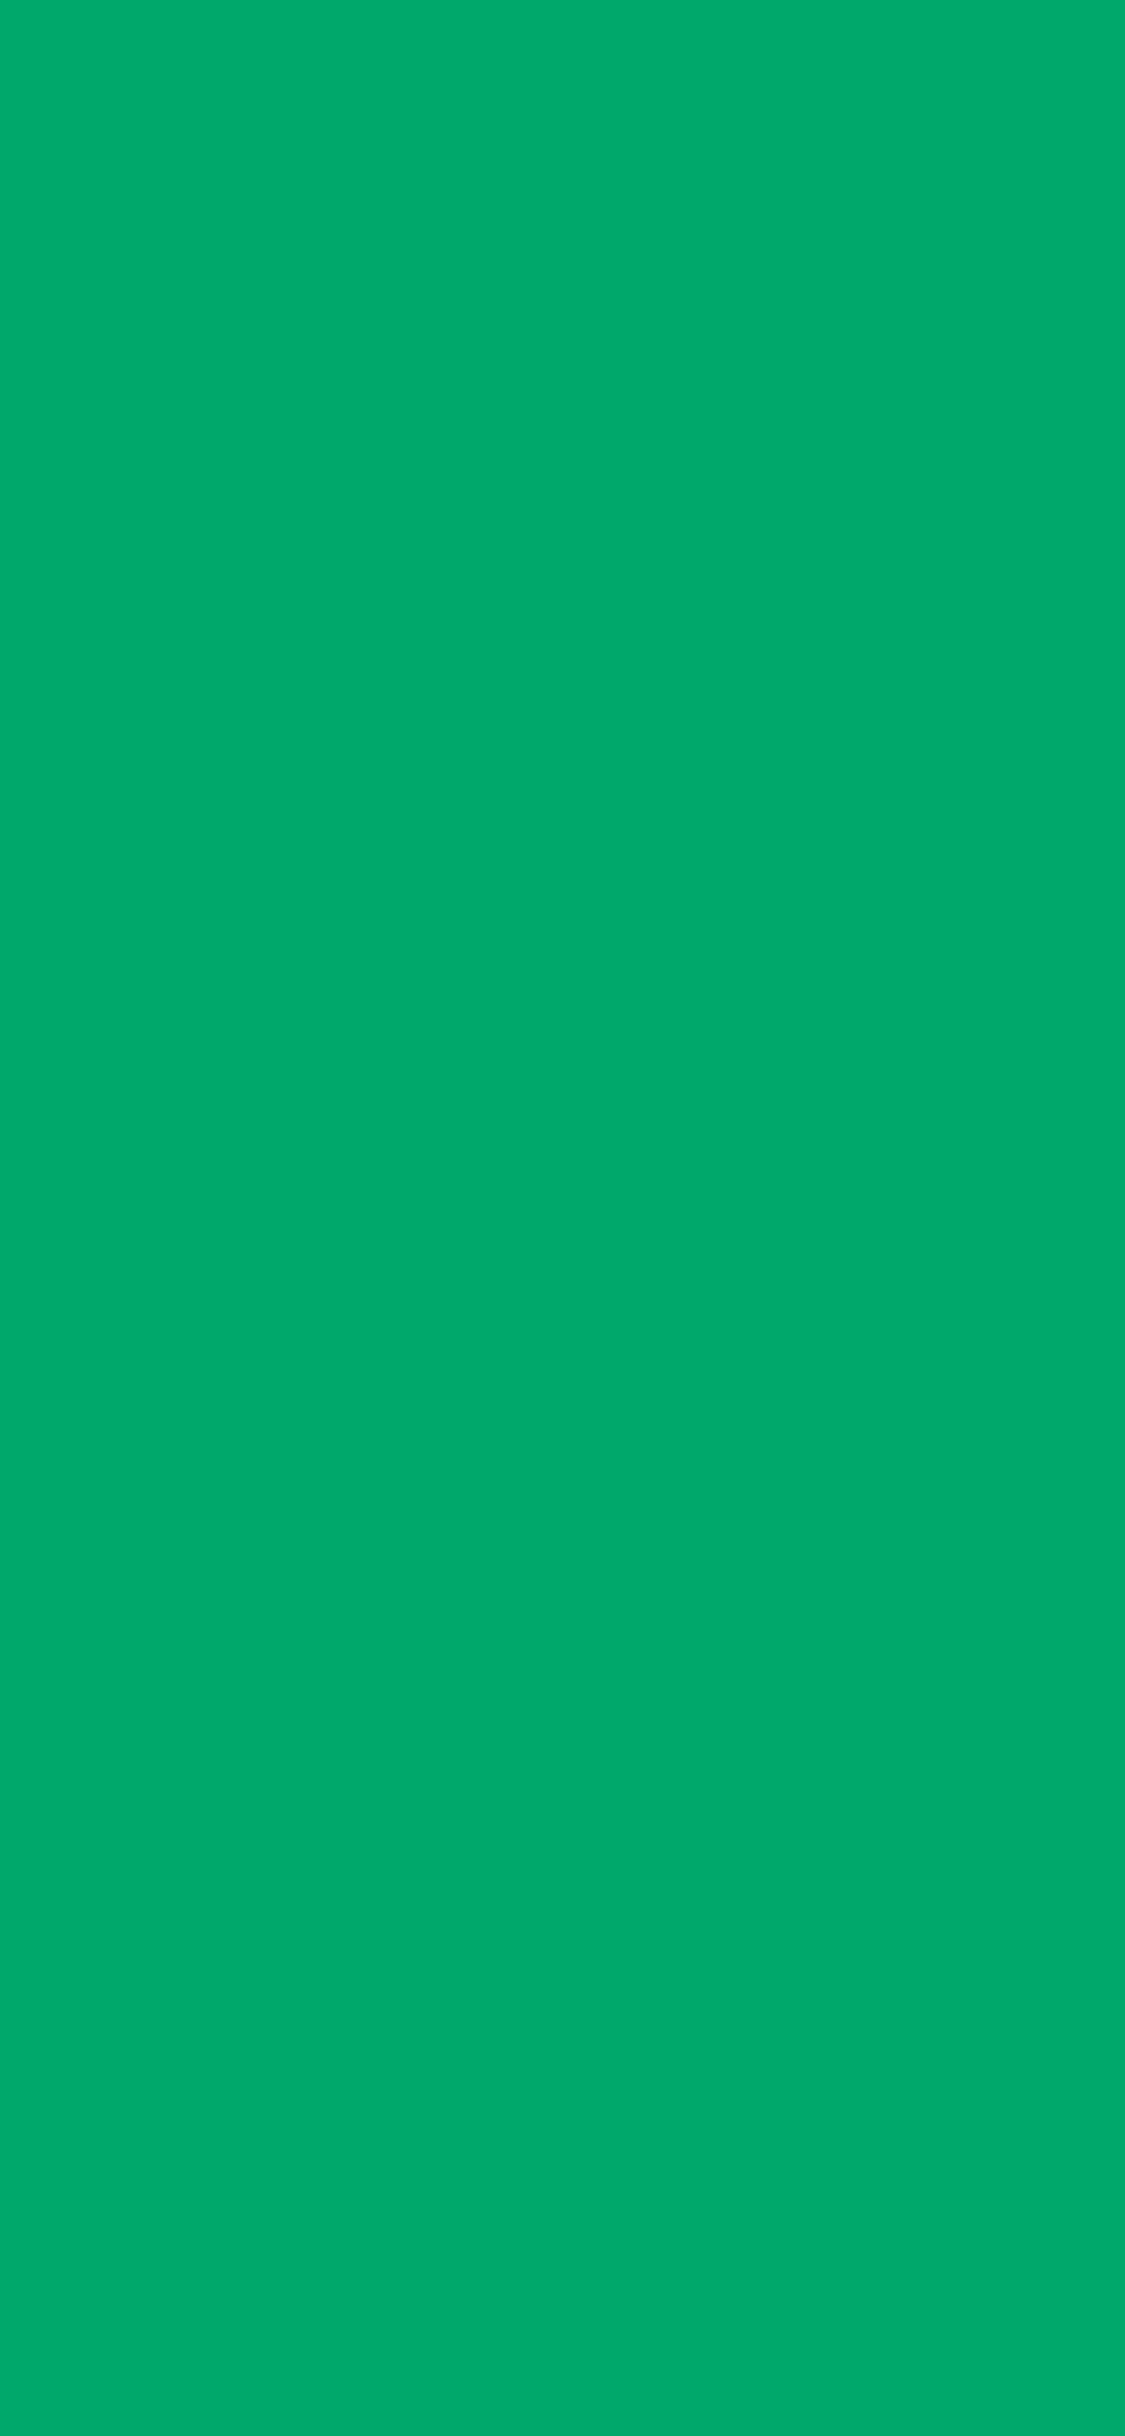 1125x2436 Jade Solid Color Background